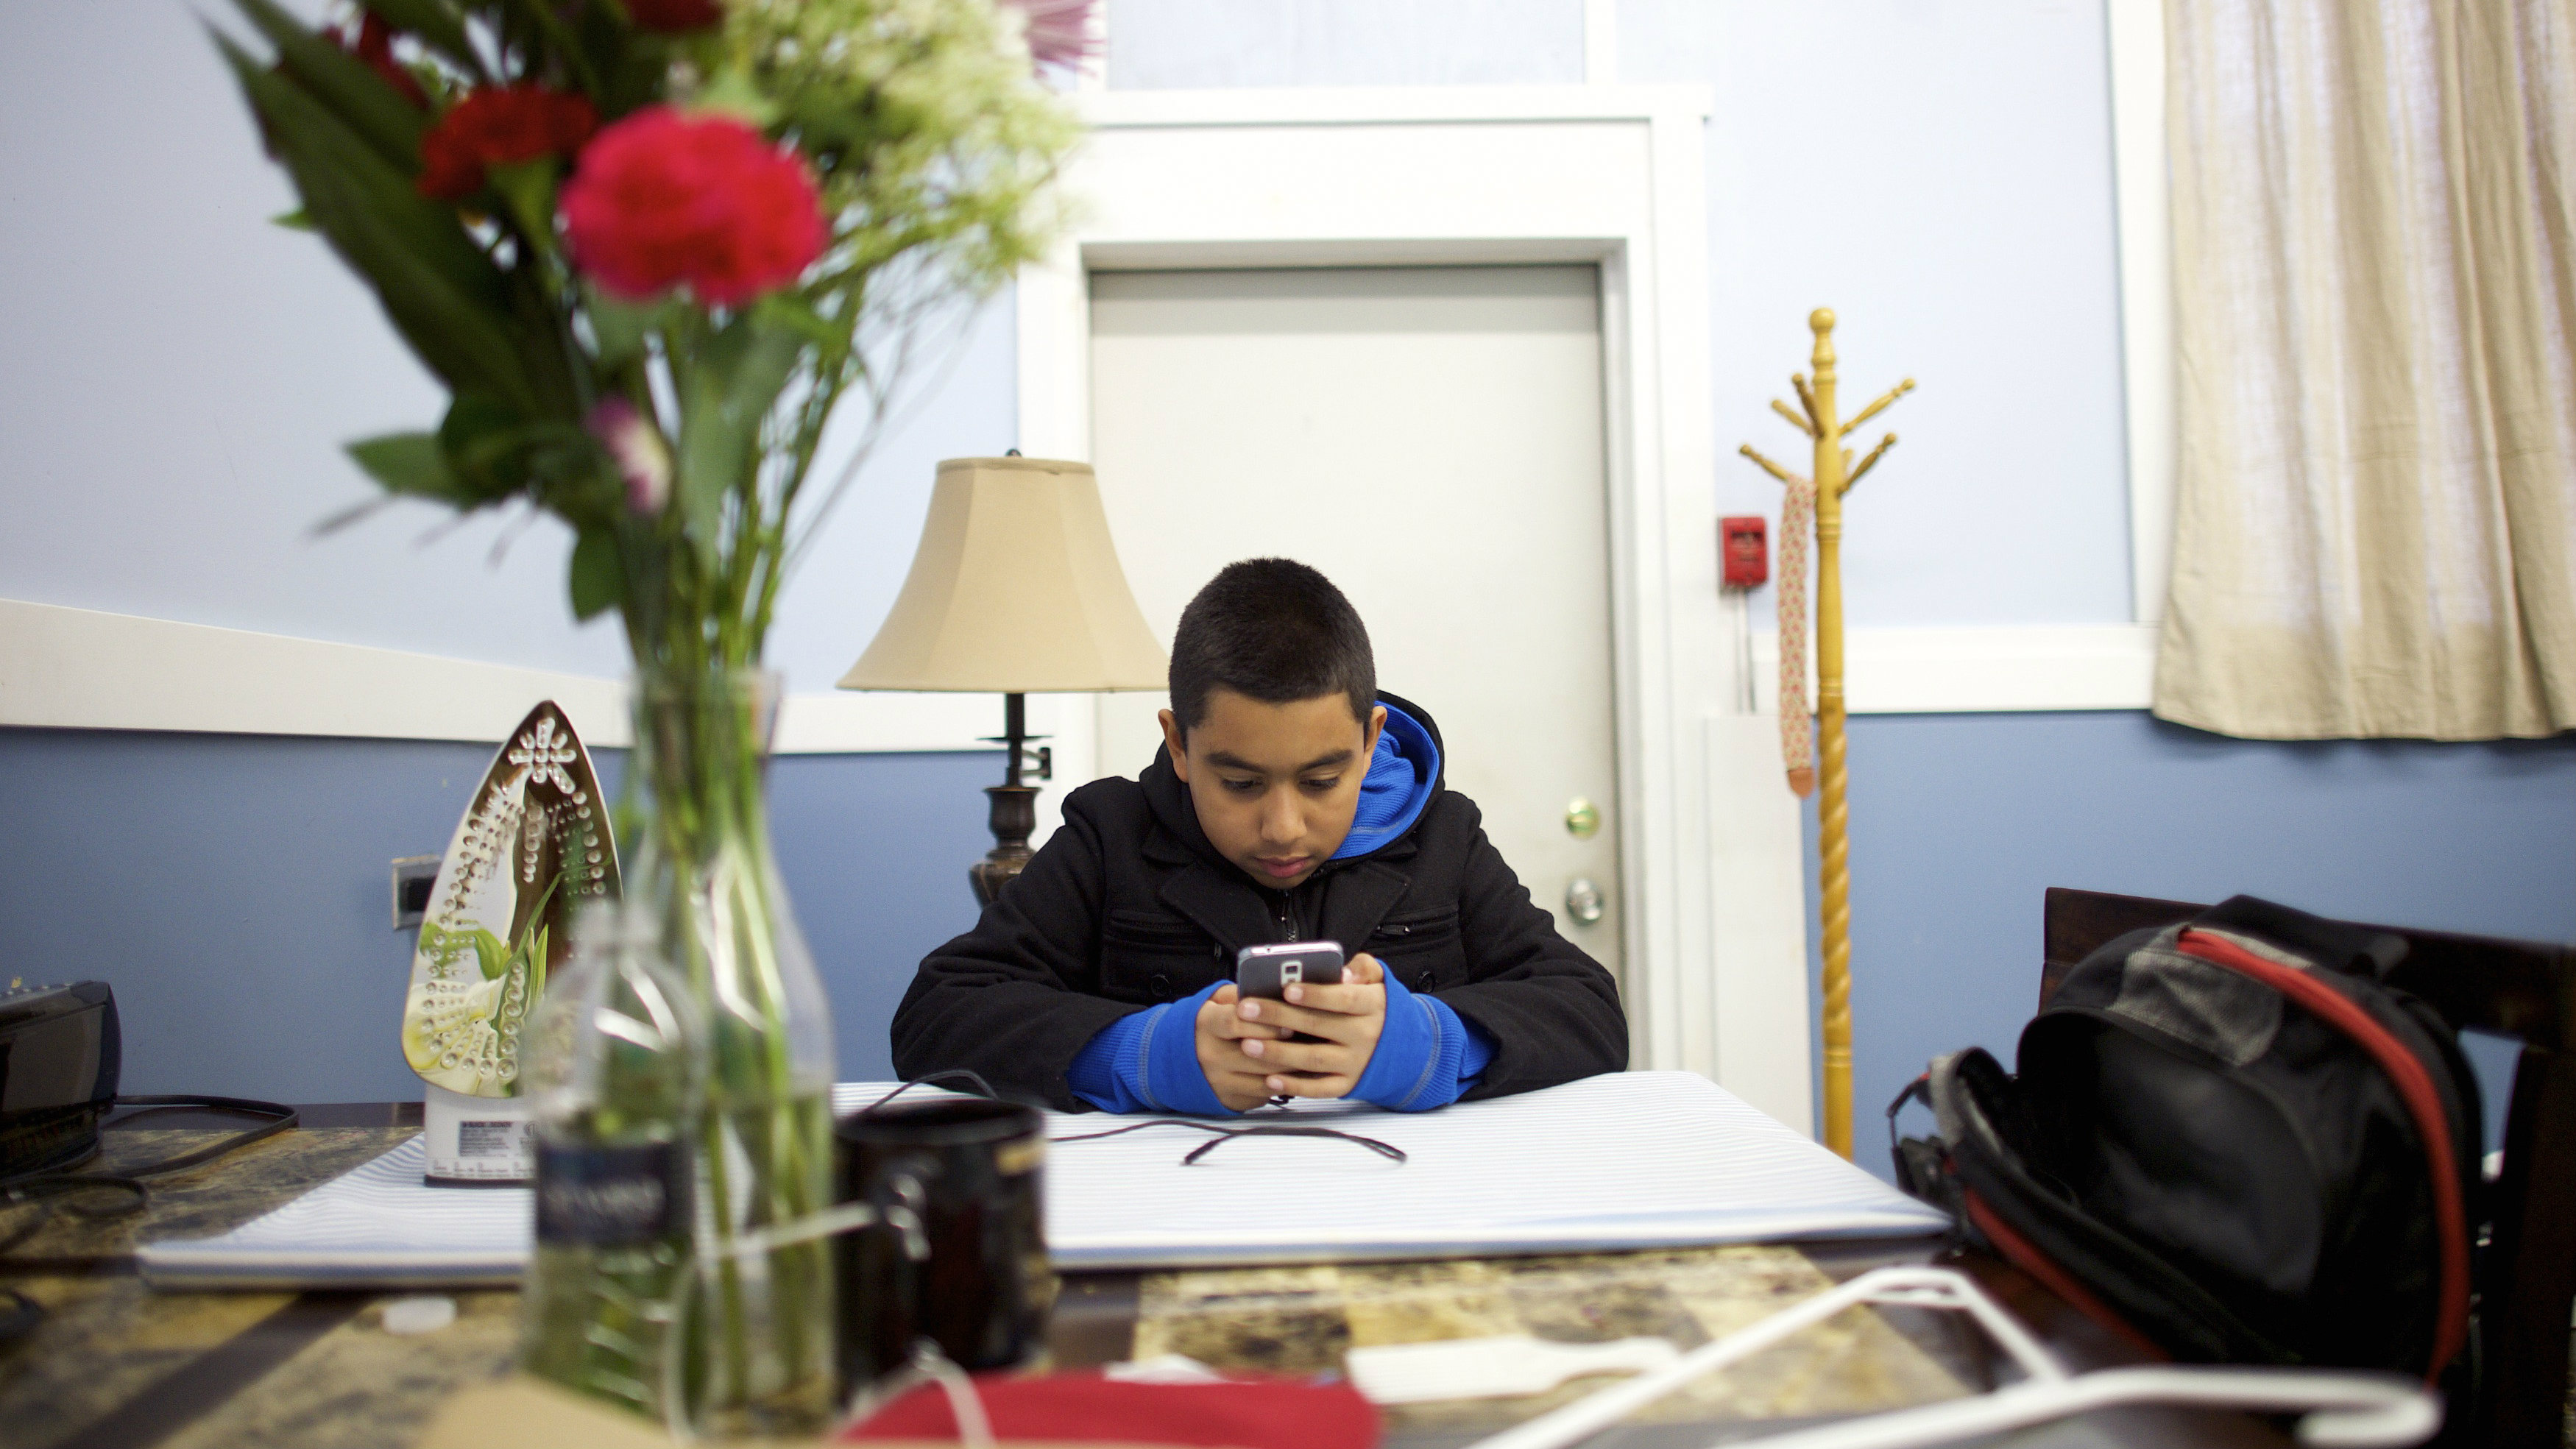 """Arturo, 11, the son of Angela Navarro, an undocumented Honduran-born immigrant with a deportation order, who moved into West Kensington Ministry Church with her family - her husband and two U.S. born children, uses his cell phone in Philadelphia, Pennsylvania November 18, 2014. Navarro, who has """"always lived in fear"""" of deportation said on Tuesday she moved into a Philadelphia church as part of a national civil disobedience action aimed at pressing President Obama on immigration reform. Navarro is the ninth undocumented immigrant who has taken refuge in a church recently as part of what activists are calling the New Sanctuary Movement. Organizers offer sanctuary in churches because federal guidelines prohibit arrests in sensitive areas unless there is a threat to public safety or national security. REUTERS/Mark Makela (UNITED STATES - Tags: SOCIETY IMMIGRATION POLITICS RELIGION)"""